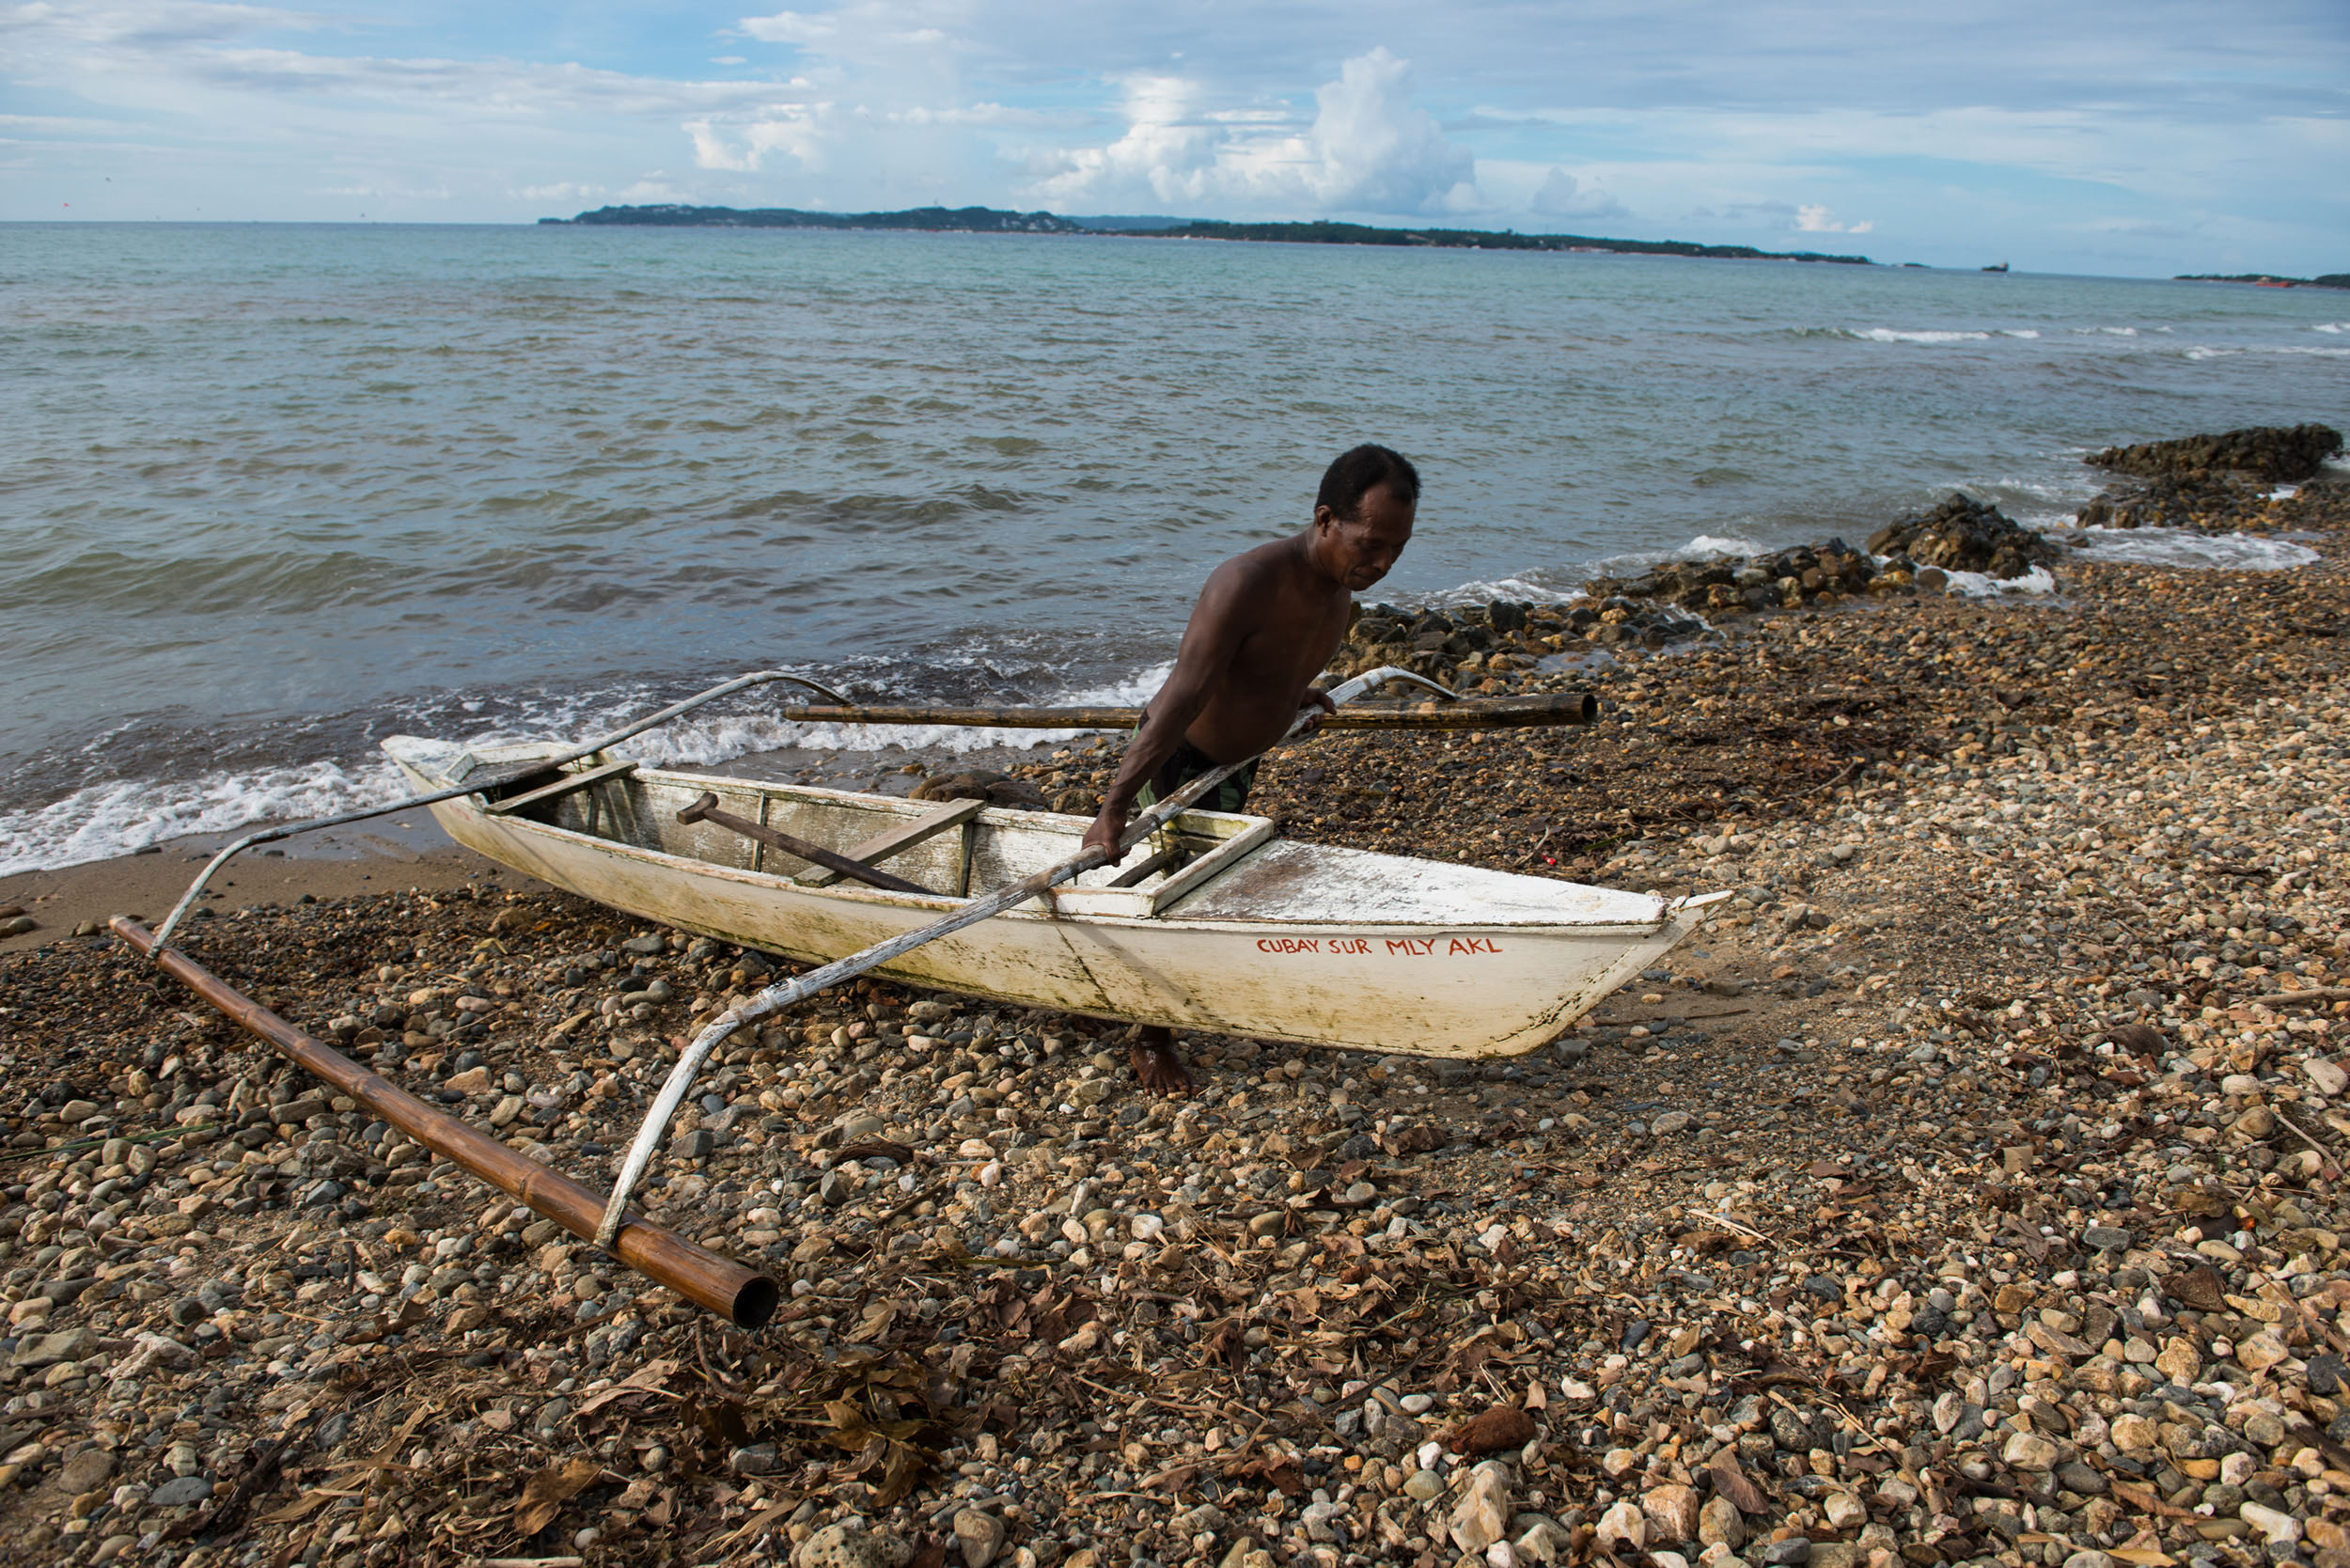 """An Ati man bringing his fishing boat out of the water. Historically, the Atis were nomadic and would rely on gathering wild foods, especially fruits, tubers, roots and honey. While fish have  always been part of their diet, it's become more important than ever, as their other wild food sources have been critically depleted due to deforestation and increased population pressures from the so-called """"lowland"""" - or non-indigenous - peoples."""